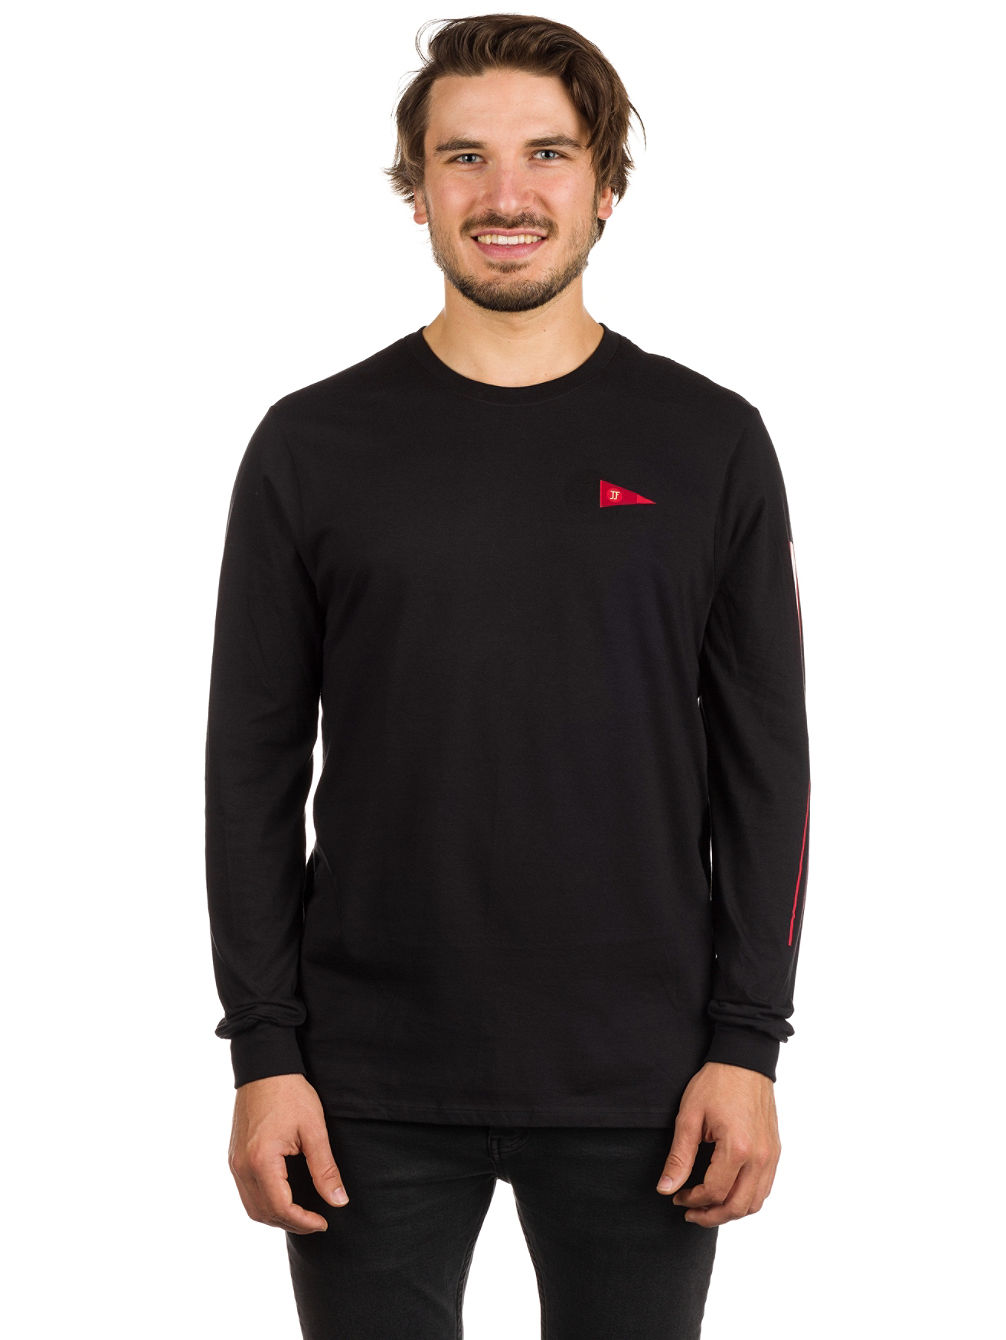 JJF Nautic T-Shirt